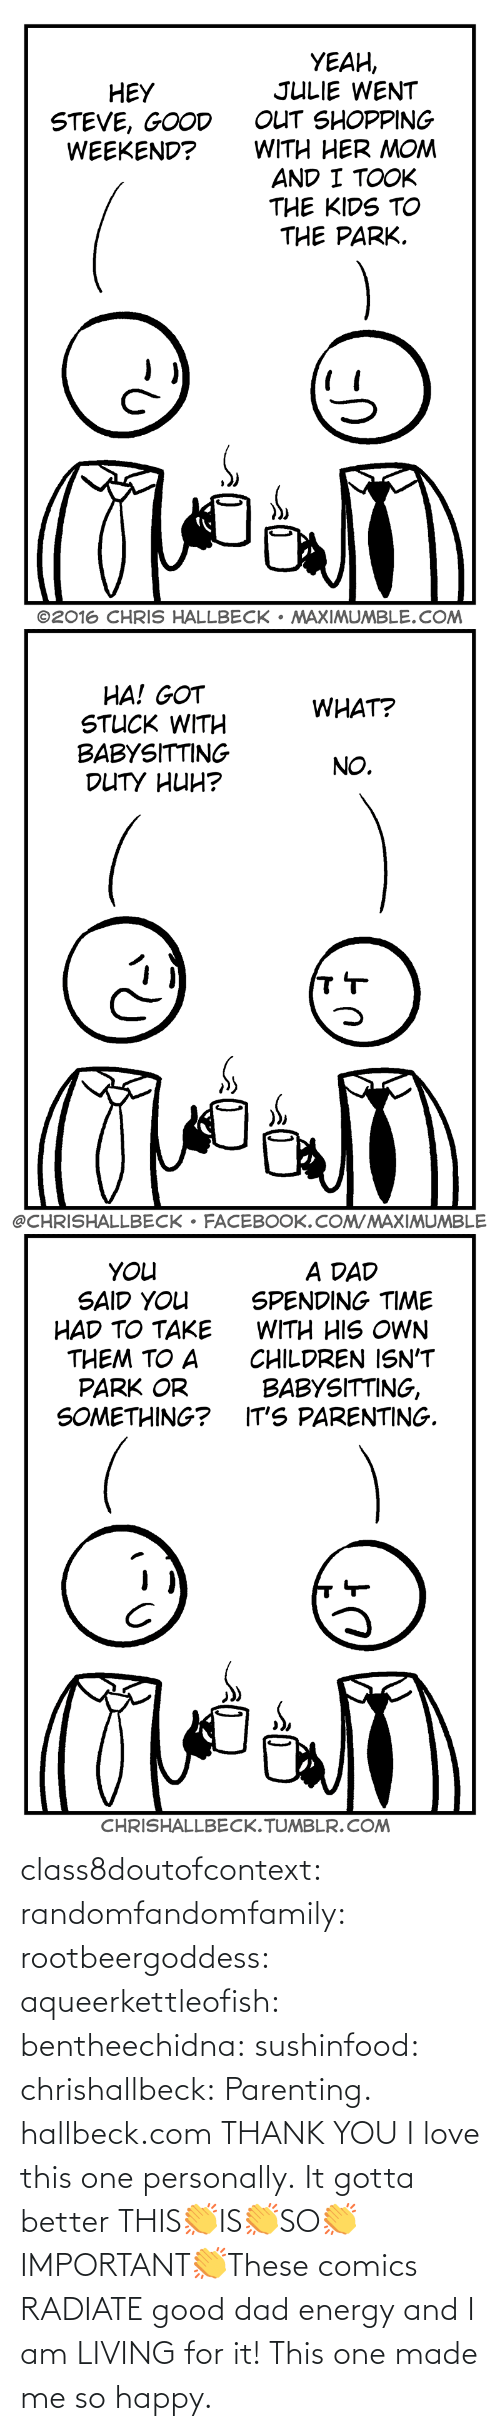 src: class8doutofcontext: randomfandomfamily:  rootbeergoddess:  aqueerkettleofish:  bentheechidna:  sushinfood:  chrishallbeck:  Parenting. hallbeck.com  THANK YOU  I love this one personally.    It gotta better   THIS👏IS👏SO👏IMPORTANT👏These comics RADIATE good dad energy and I am LIVING for it!    This one made me so happy.